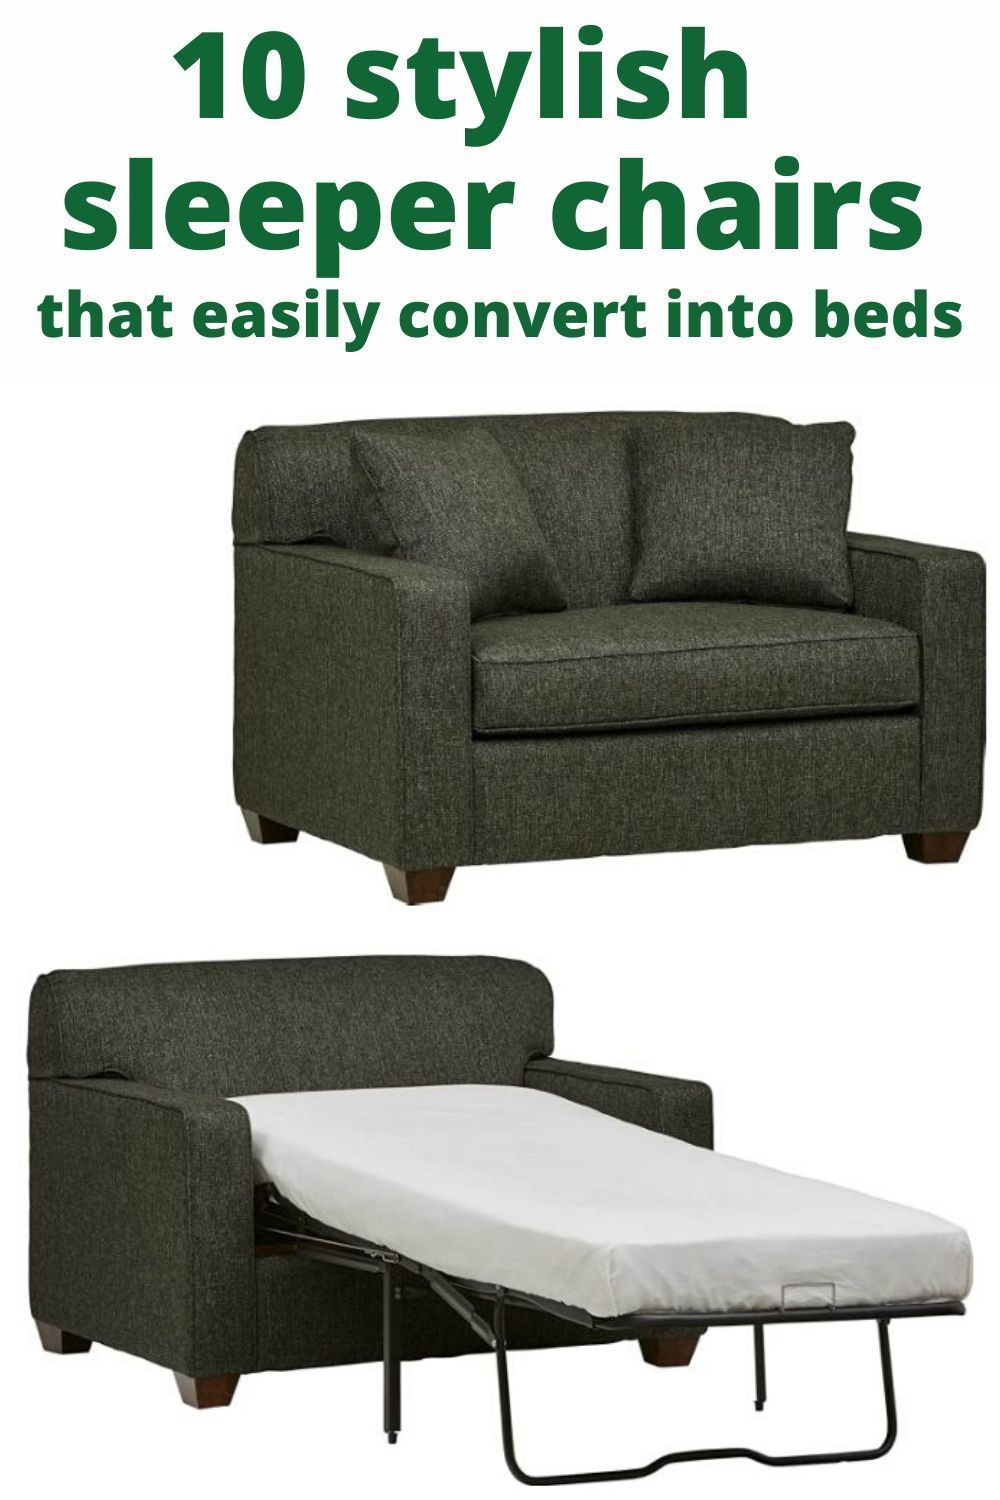 10 Stylish Sleeper Chairs That Easily Convert Into Beds Living In A Shoebox Sleeper Chair Futon Chair Futon Chair Bed Chairs that convert to beds